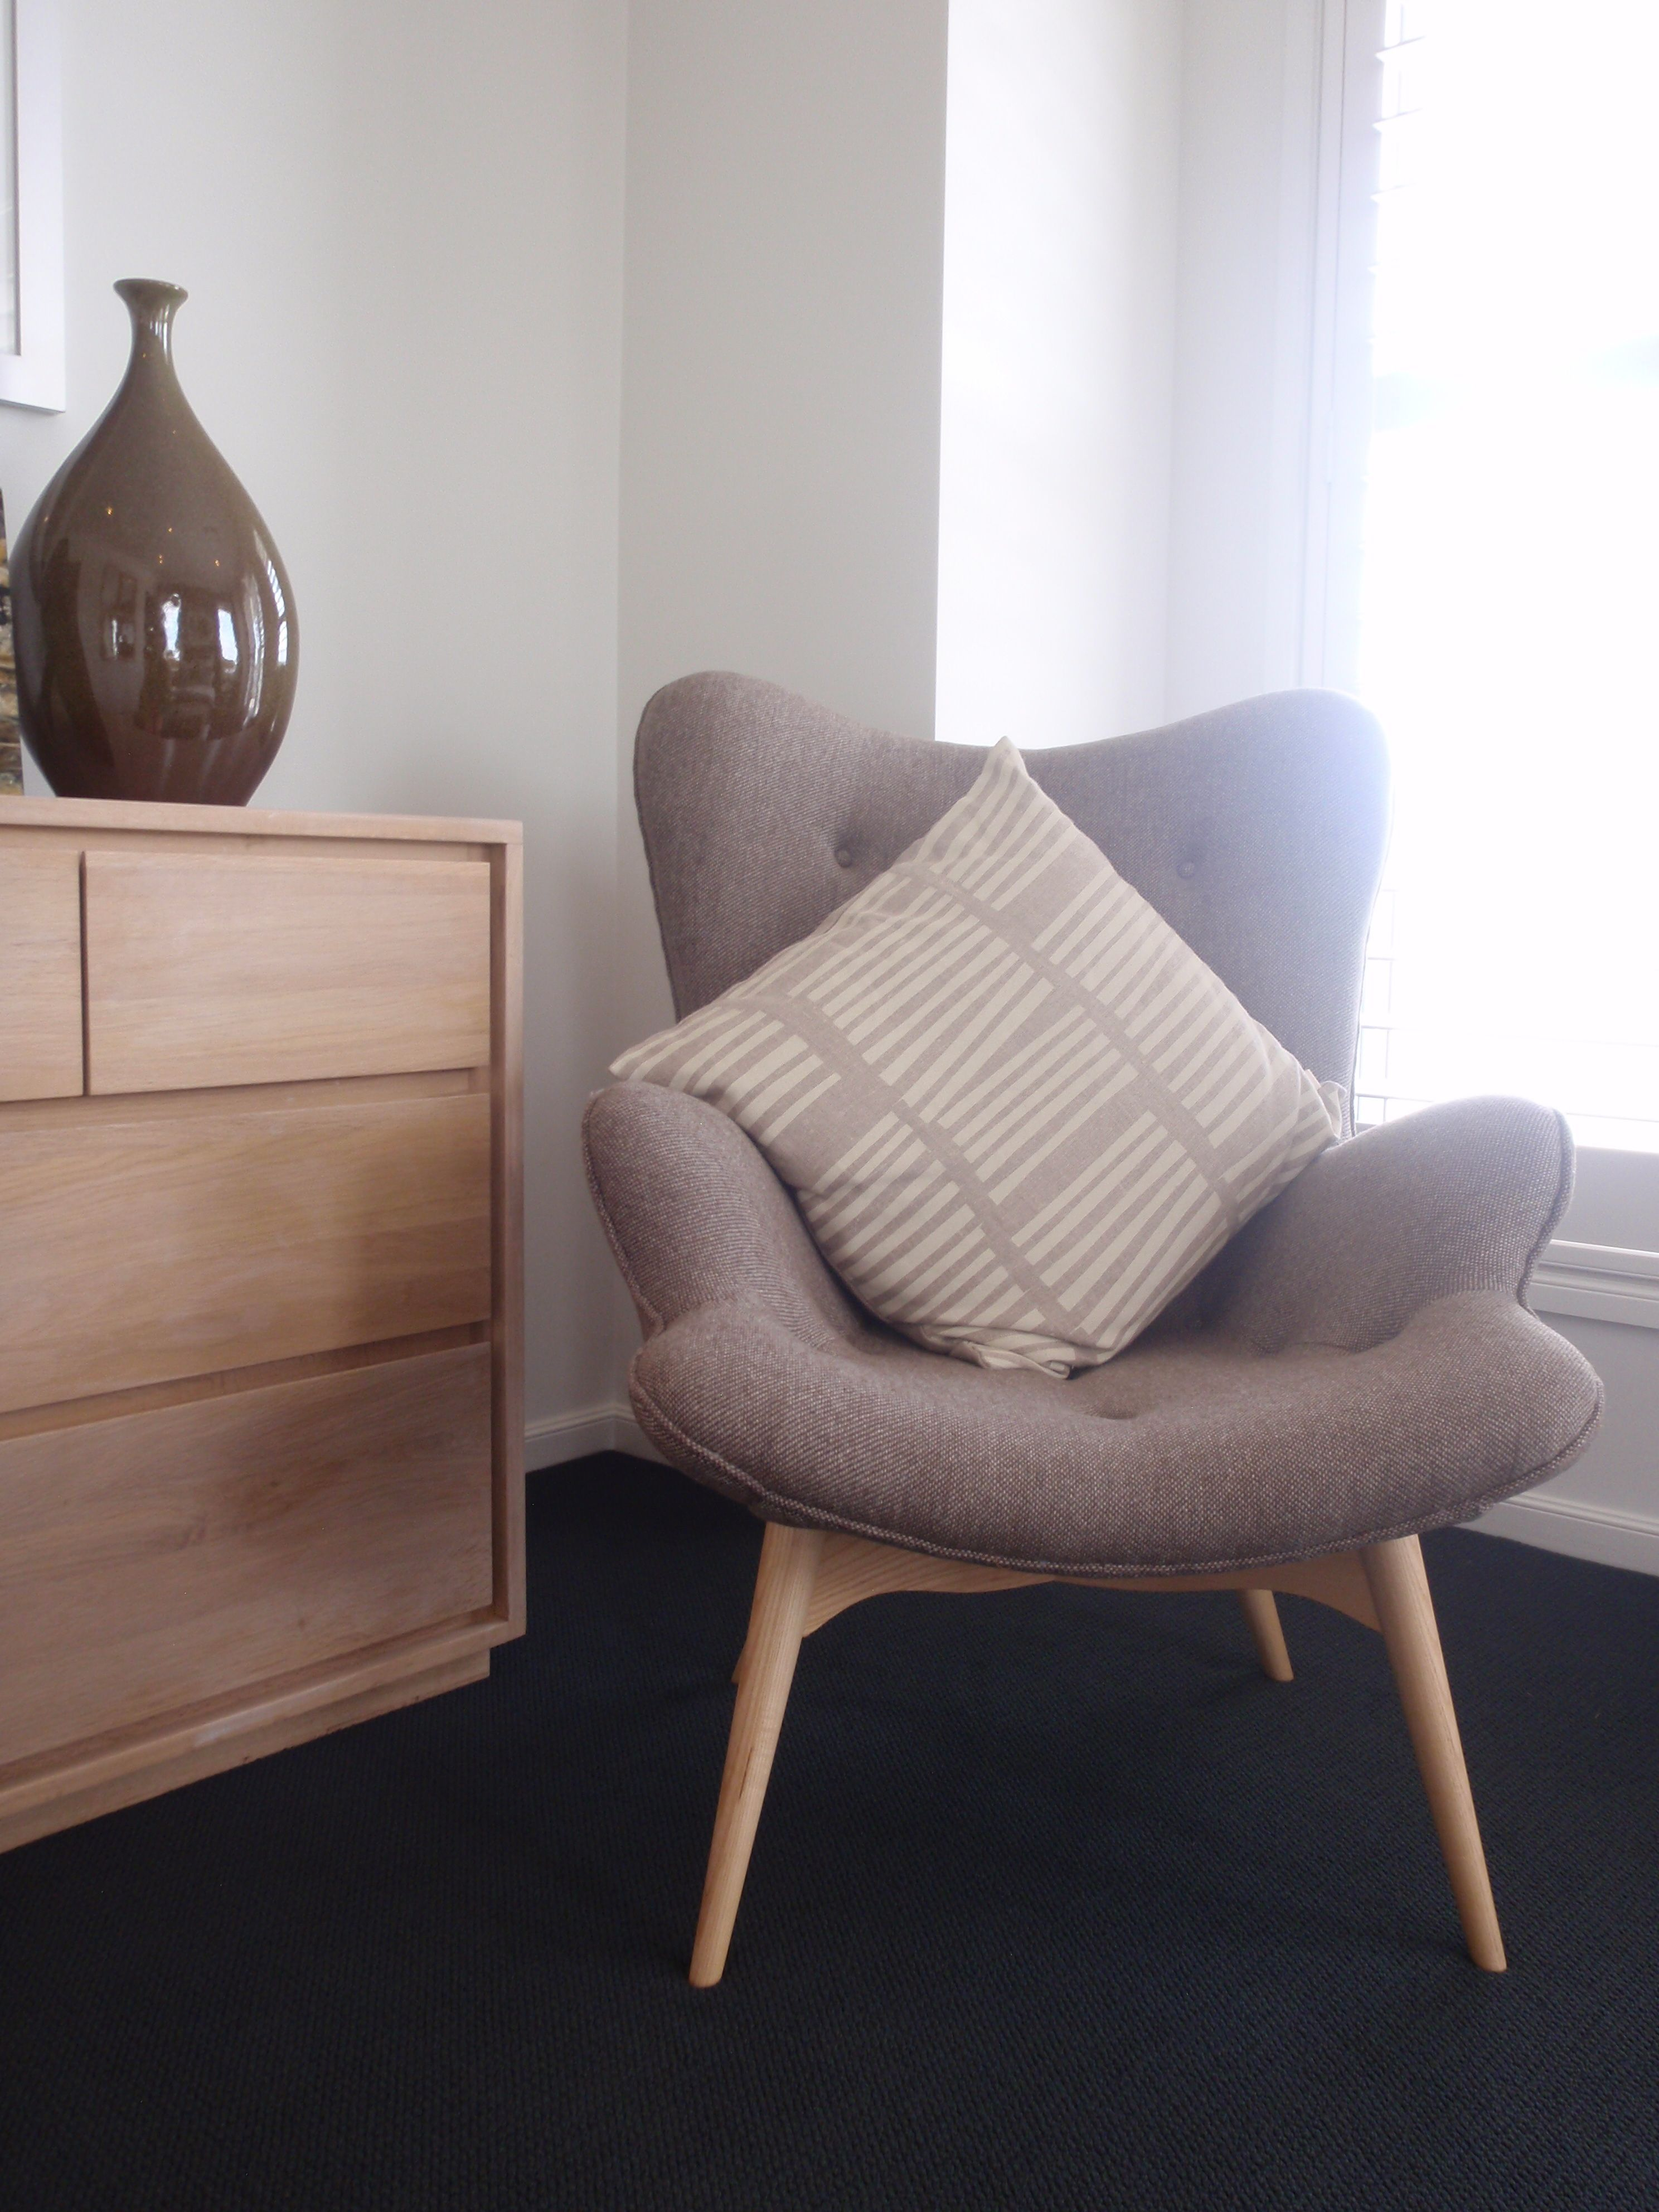 Small Bedroom Chairs Next Bedroom Chairs Small Comfy Chair